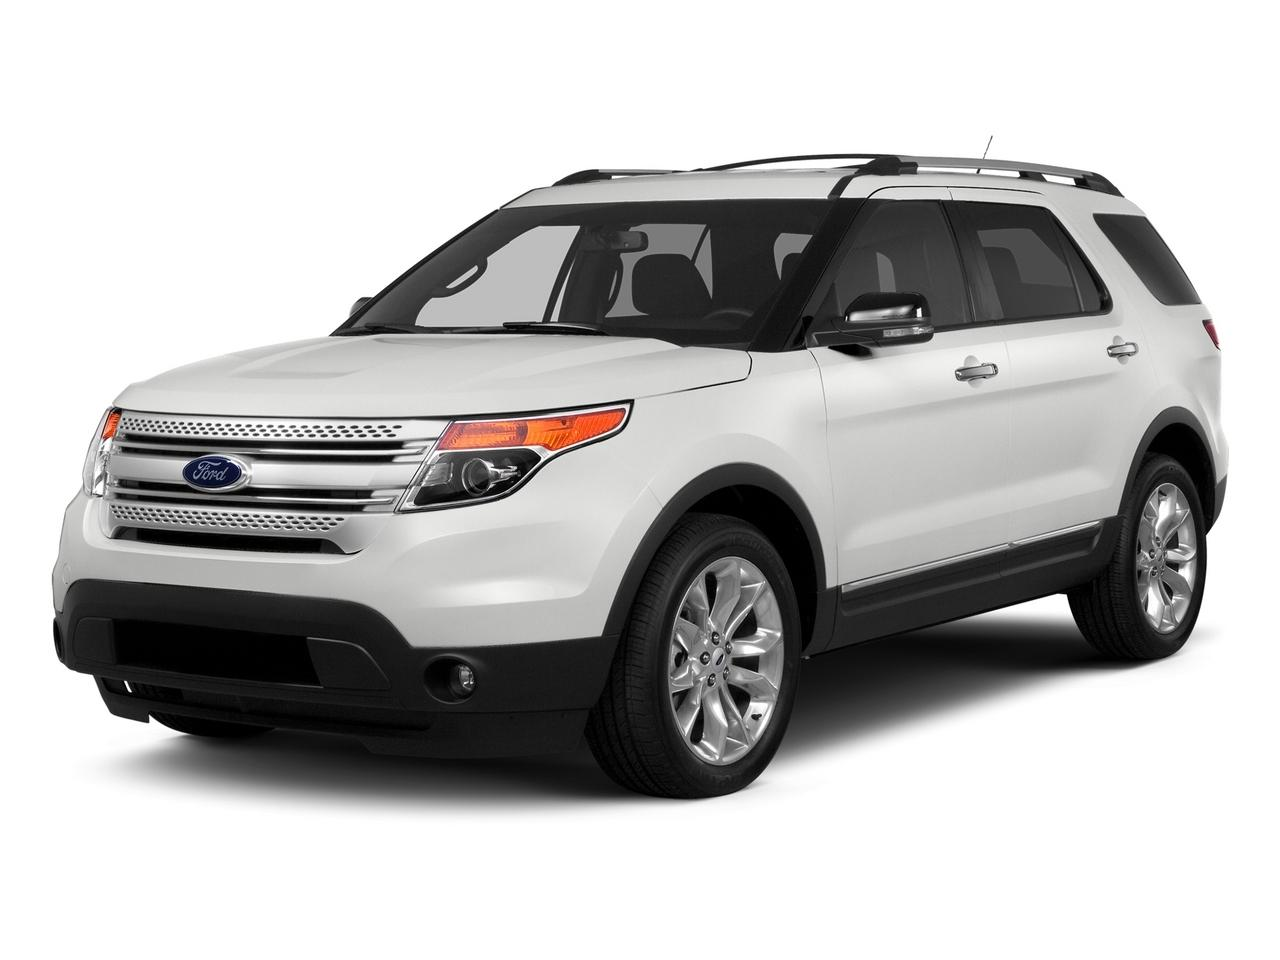 2015 Ford Explorer Vehicle Photo in San Angelo, TX 76901